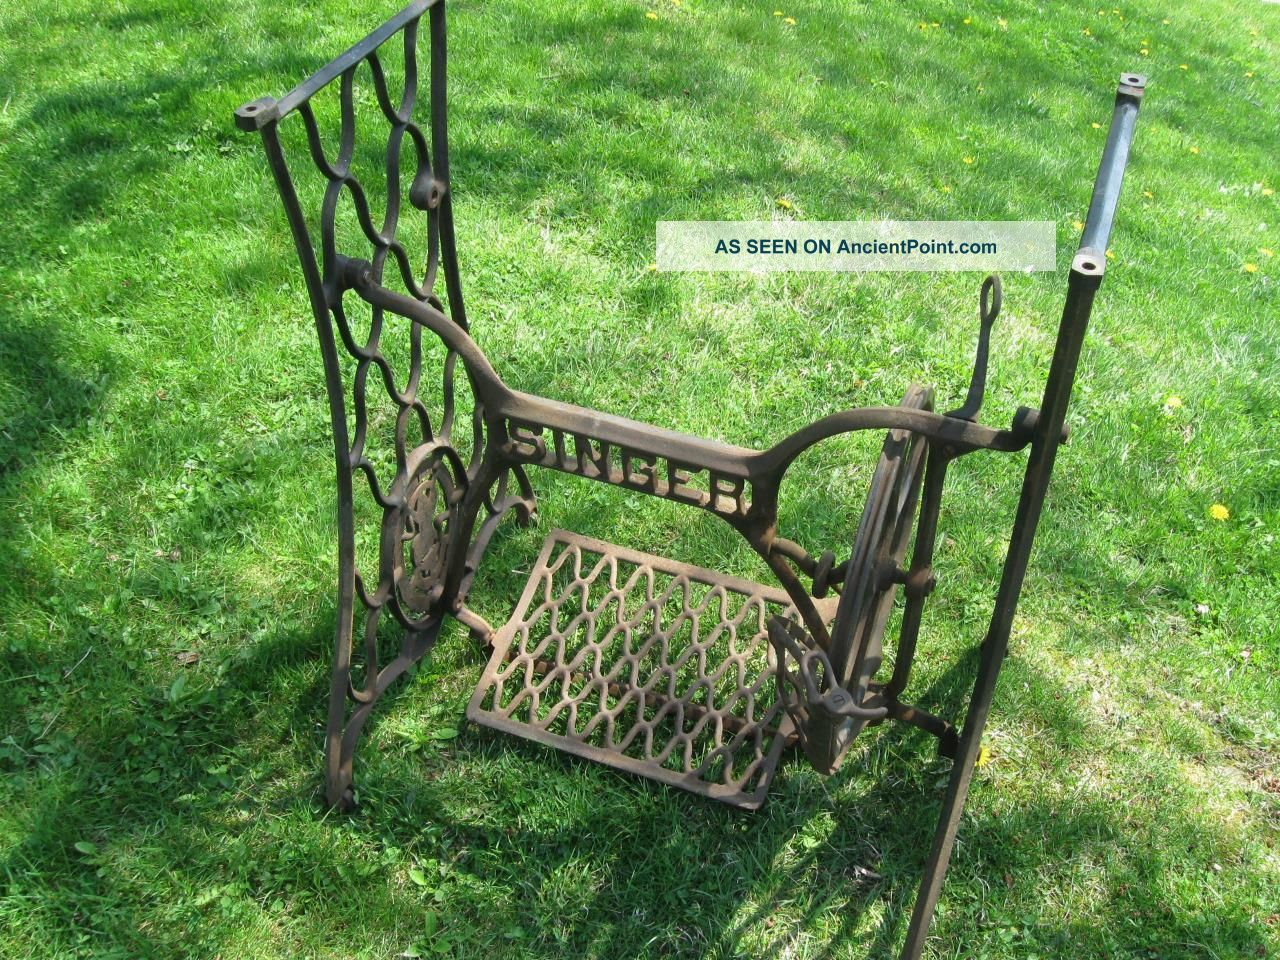 Antique Singer Treadle Sewing Machine Base Cast Iron Base Industrial Age 1913 Sewing Machines photo